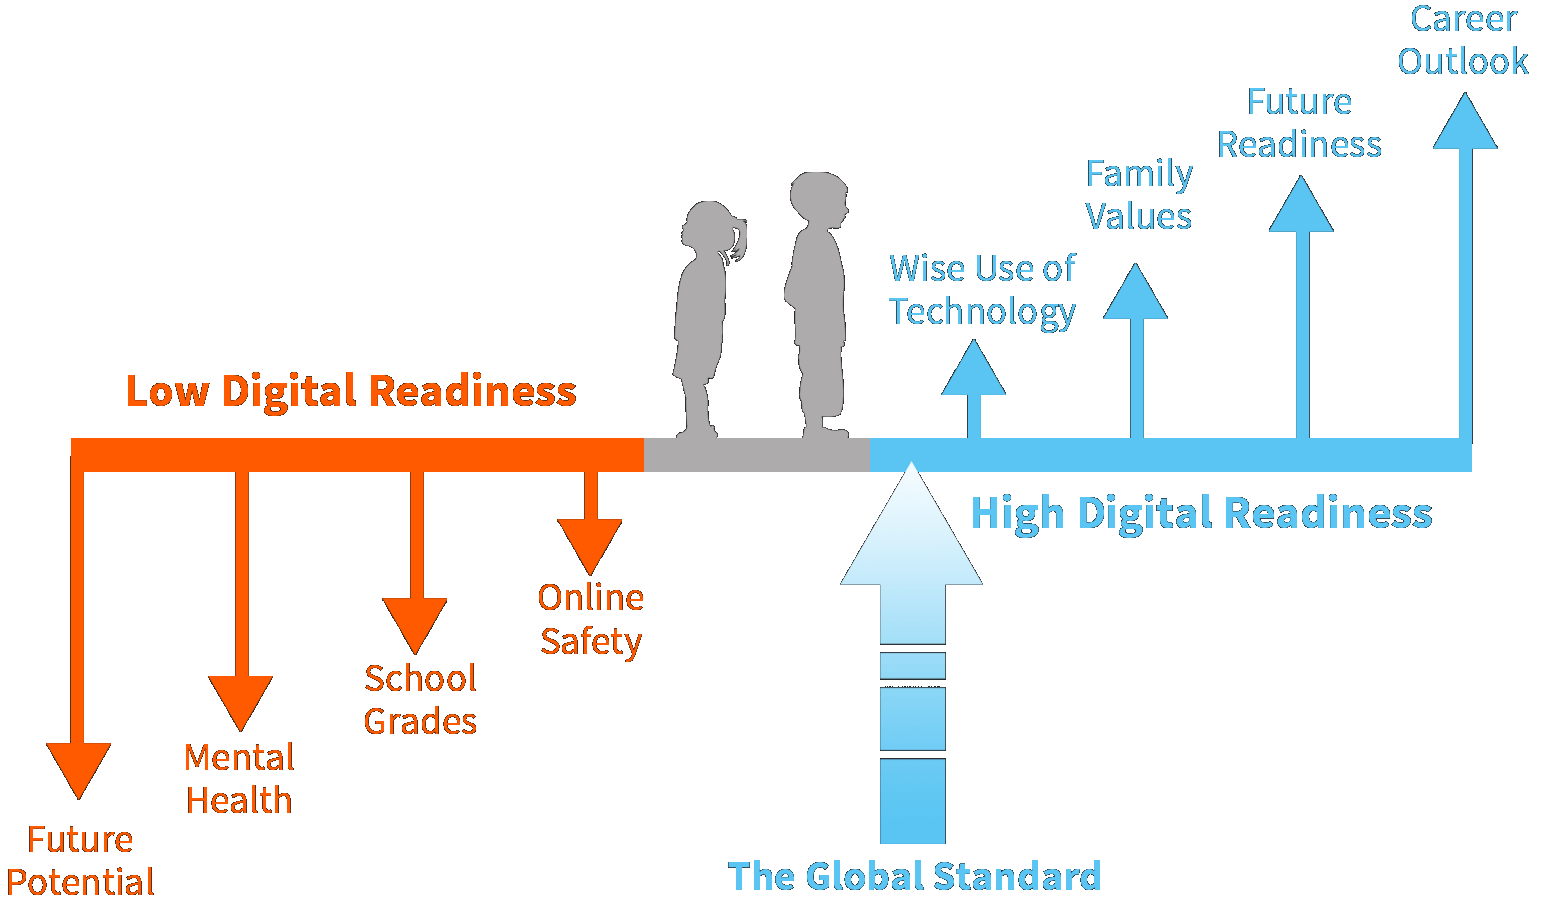 Digital Readiness